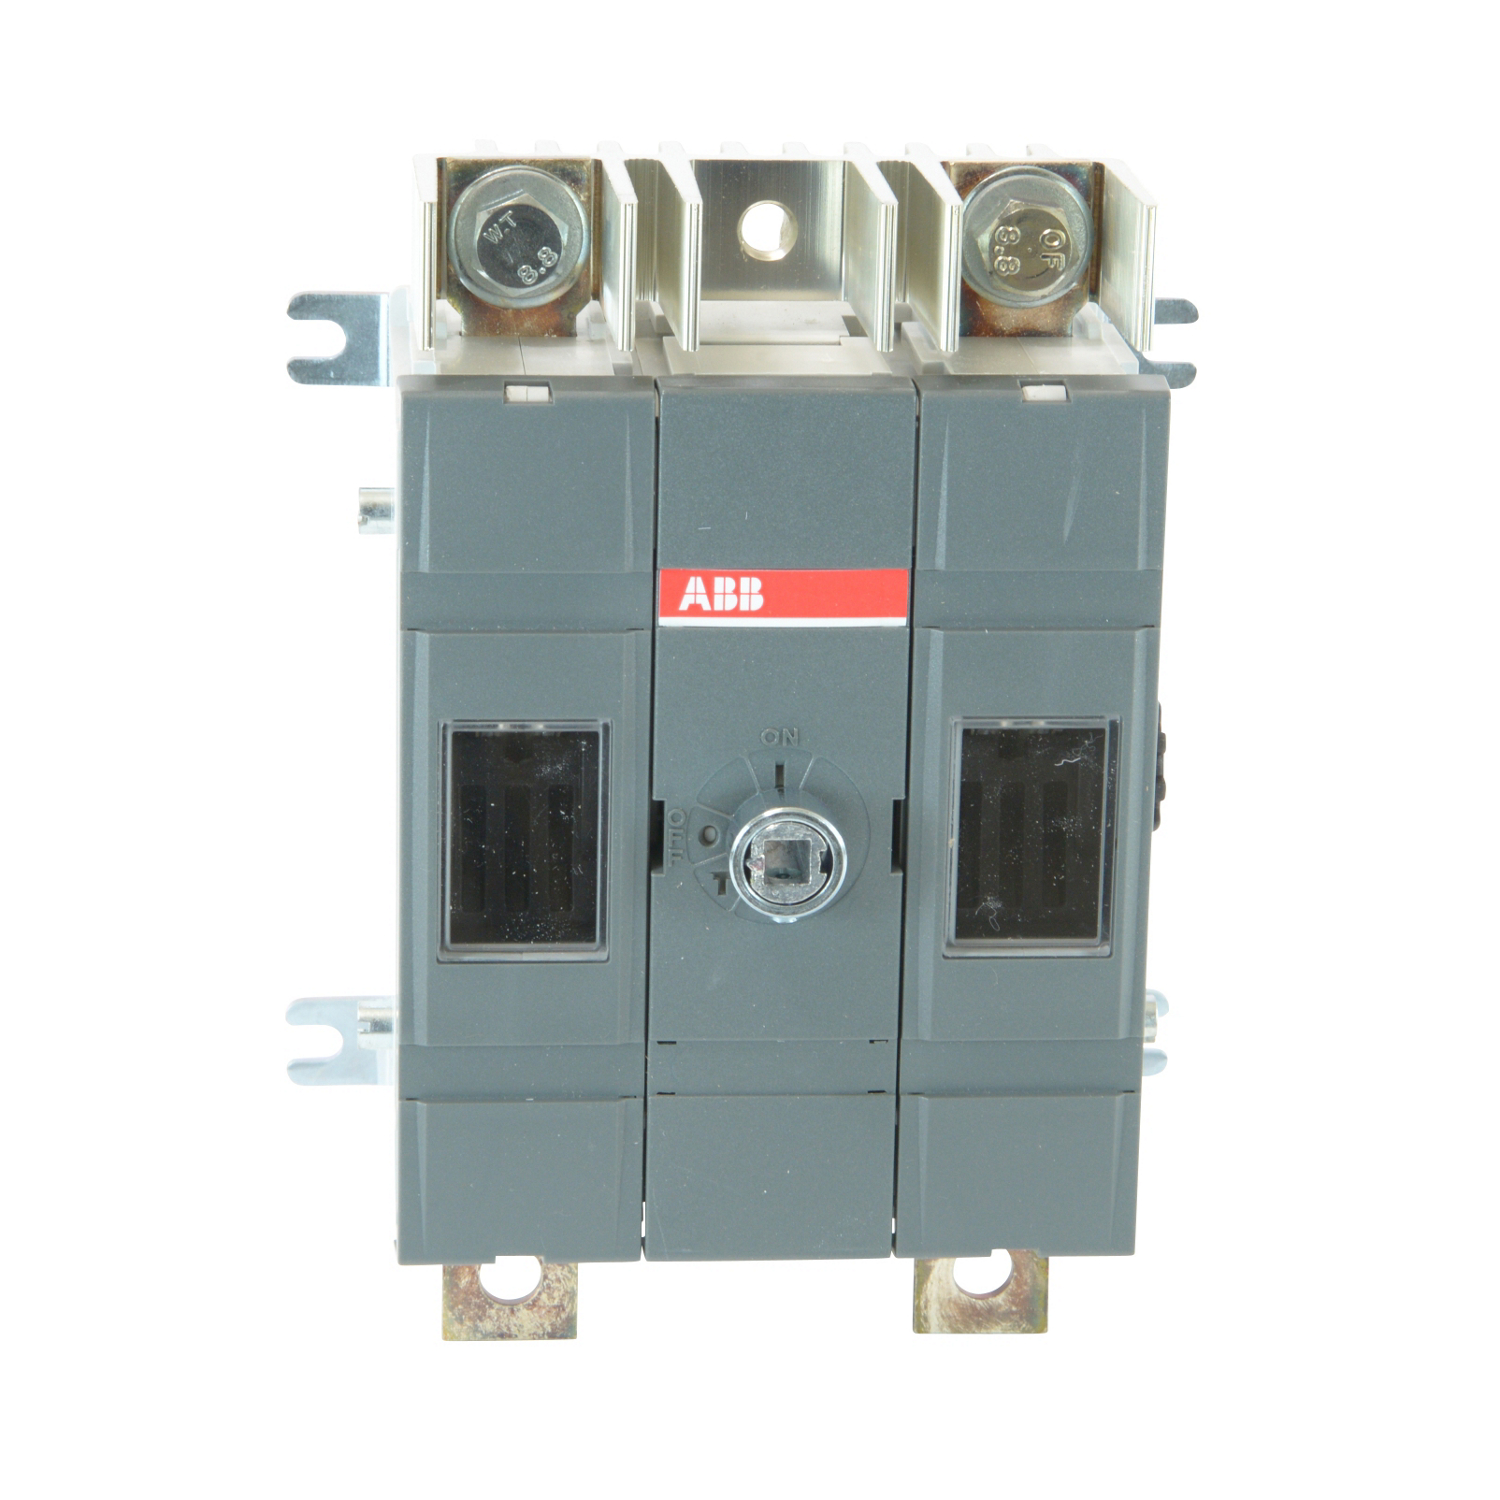 OS30FACC12 ABB 3POLE 30A CLASS CC FUSIBLE DISCONNECT SWITCH; 1POLE LEFT/2POLES RIGHT OF MECHANISM